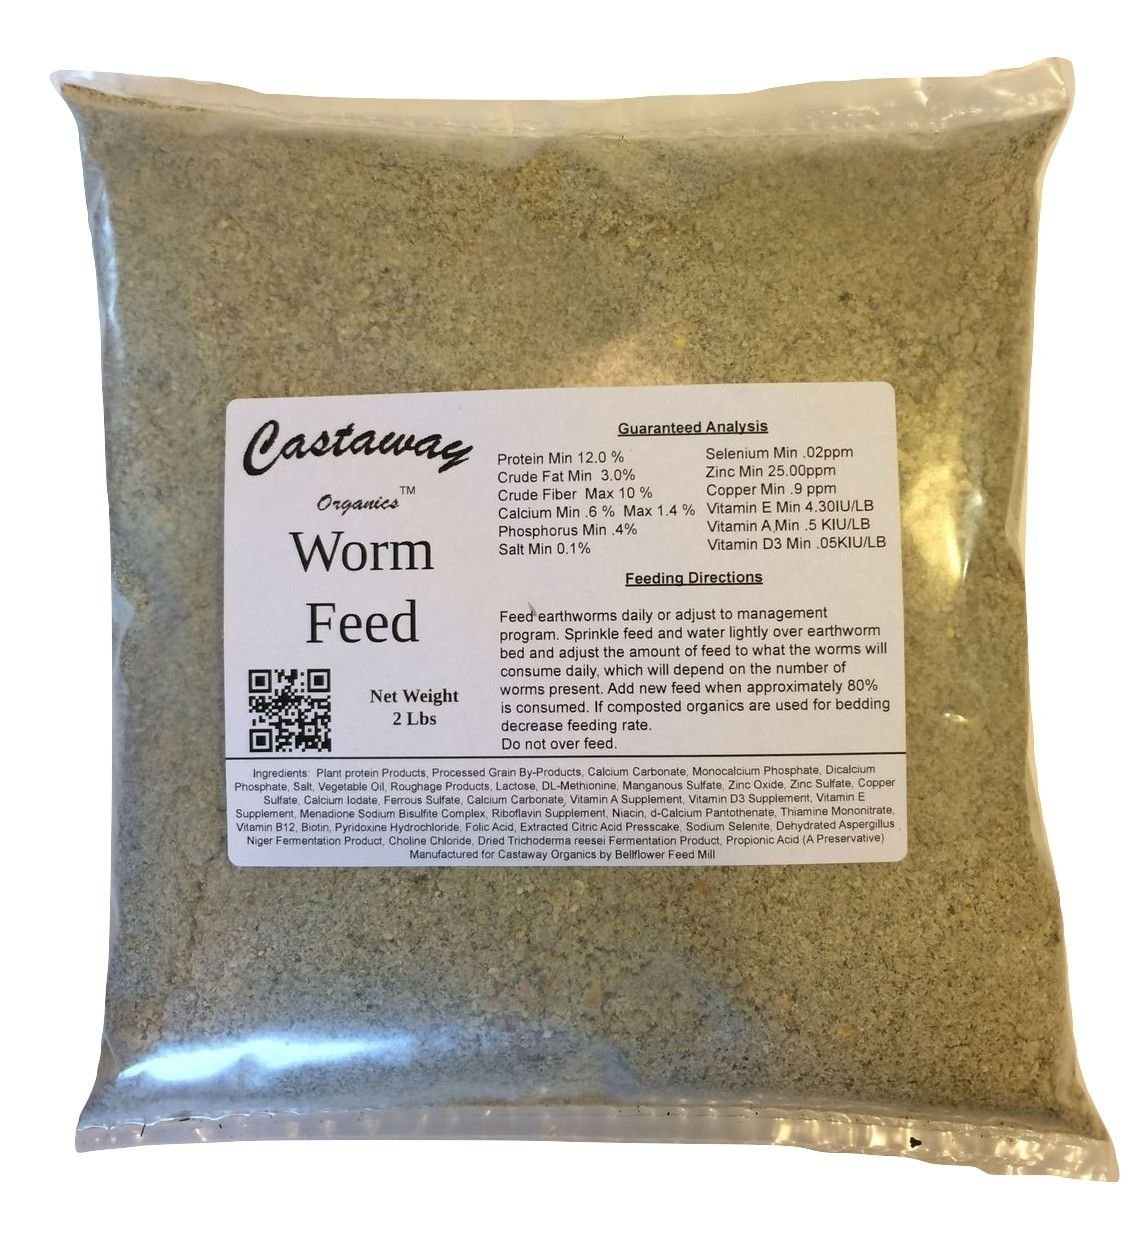 Castaway Organics 2 lbs Worm Feed (Worm Chow Food for All Composting and Bait Worms) by Castaway Organics